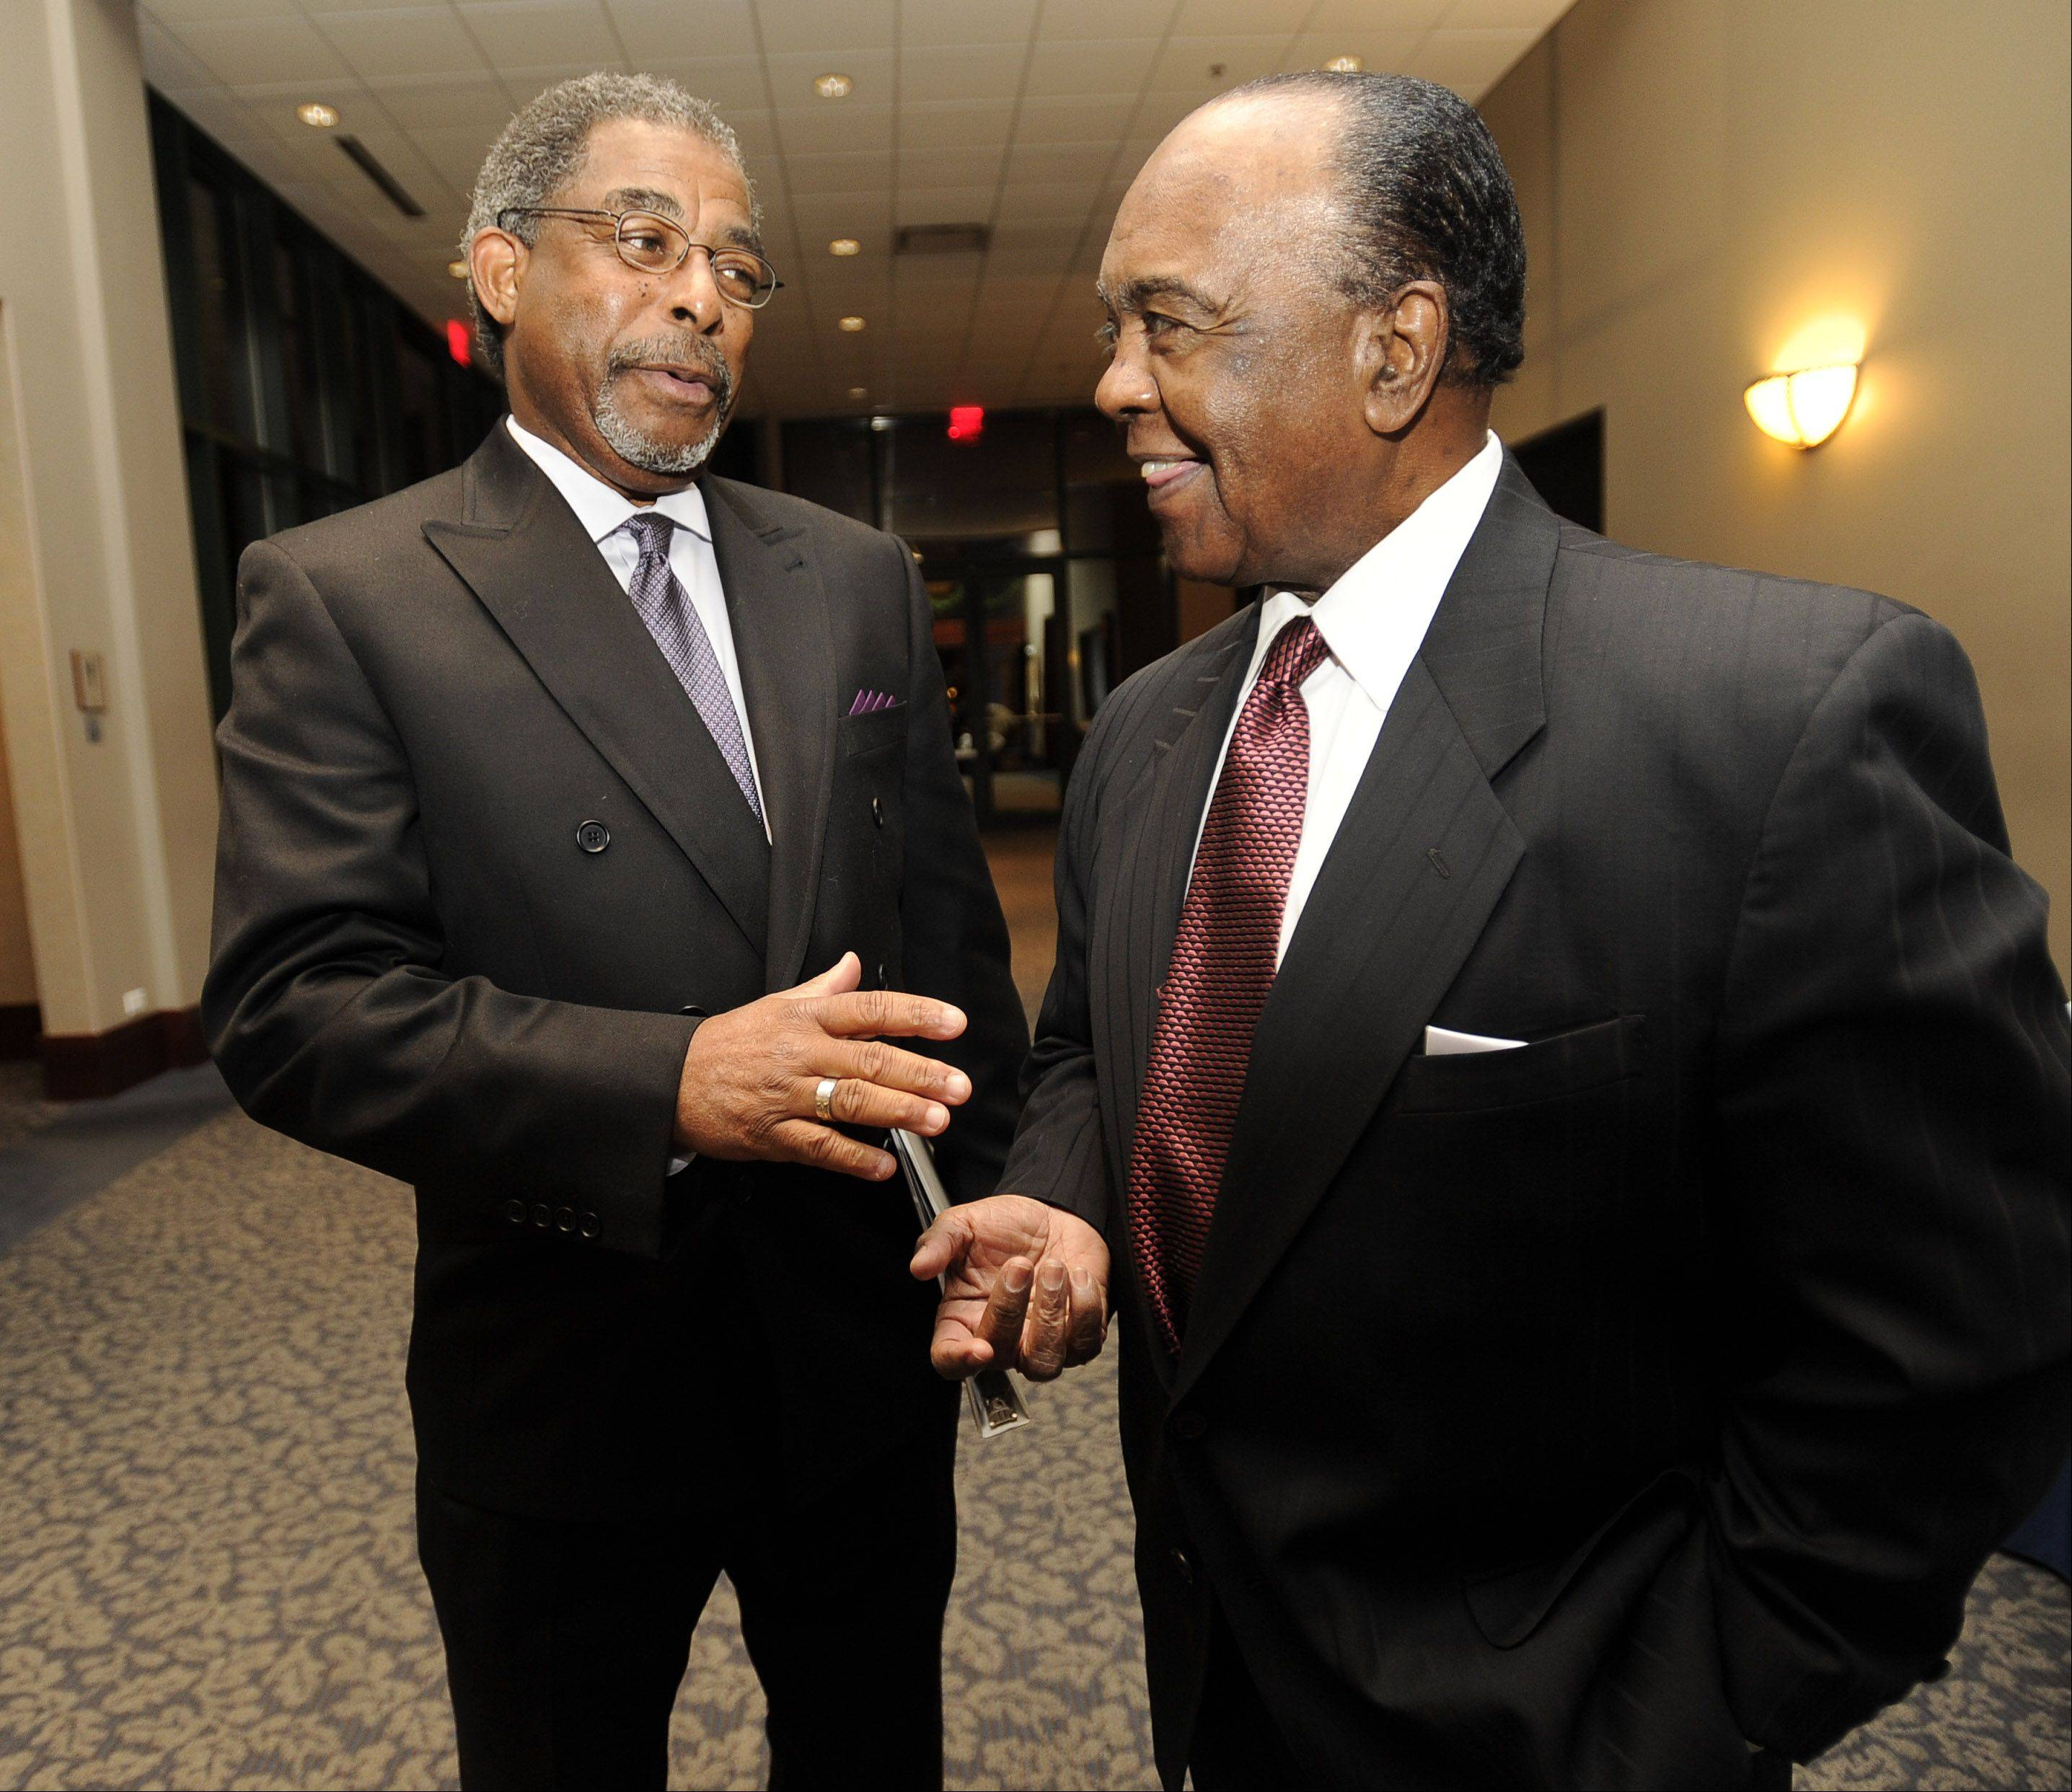 The Rev. Nathaniel Edmond, pastor of the Second Baptist Church of Elgin, left, speaks with the Rev. Clyde Brooks at last year's suburban celebration of the life, work and birthday of Martin Luther King.